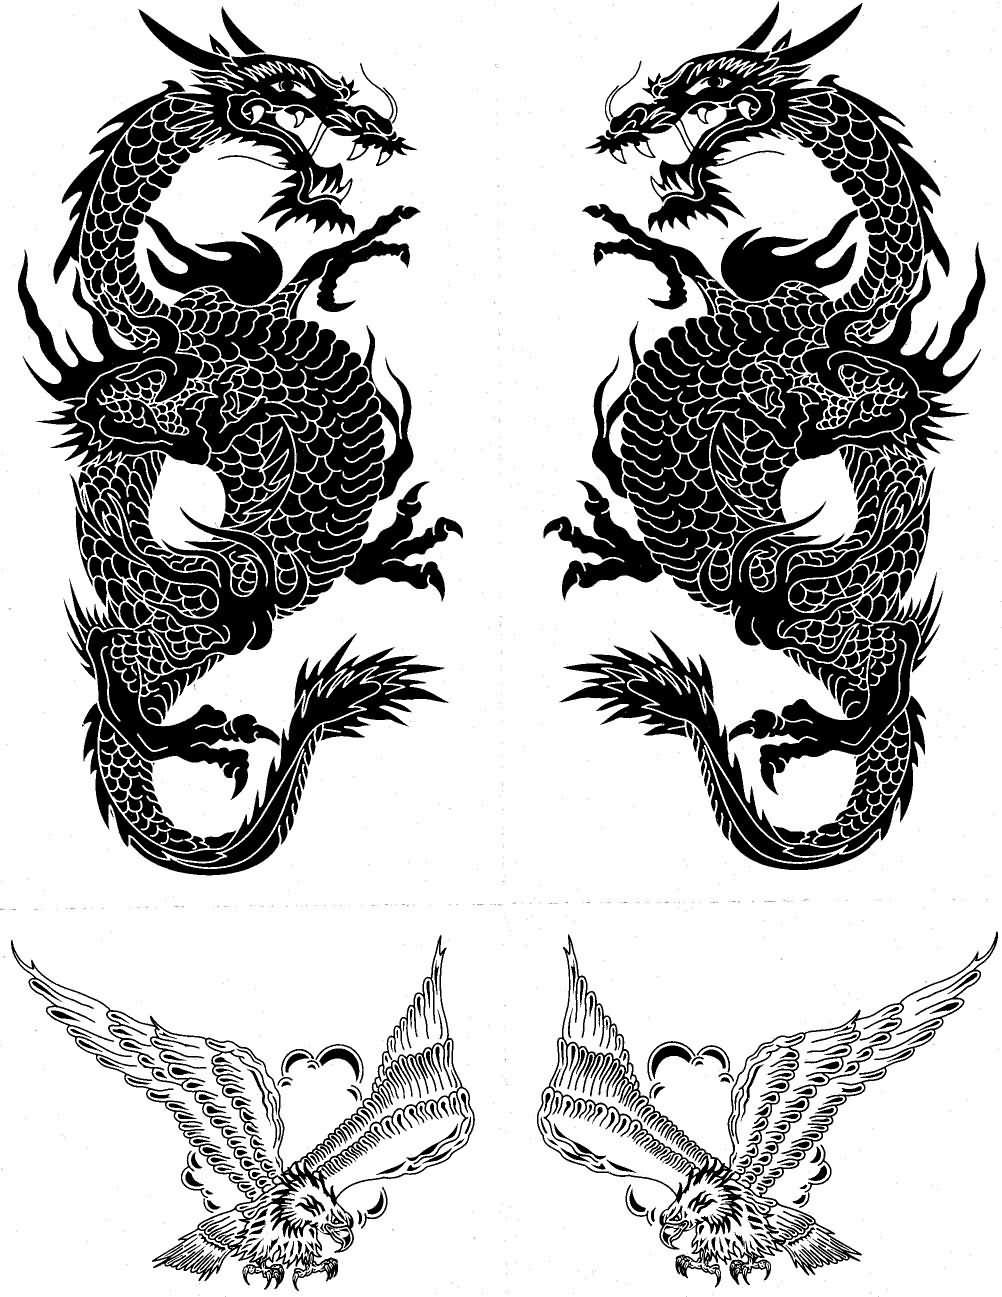 Black White Dragon Stickers amp Sticker Designs  Zazzle